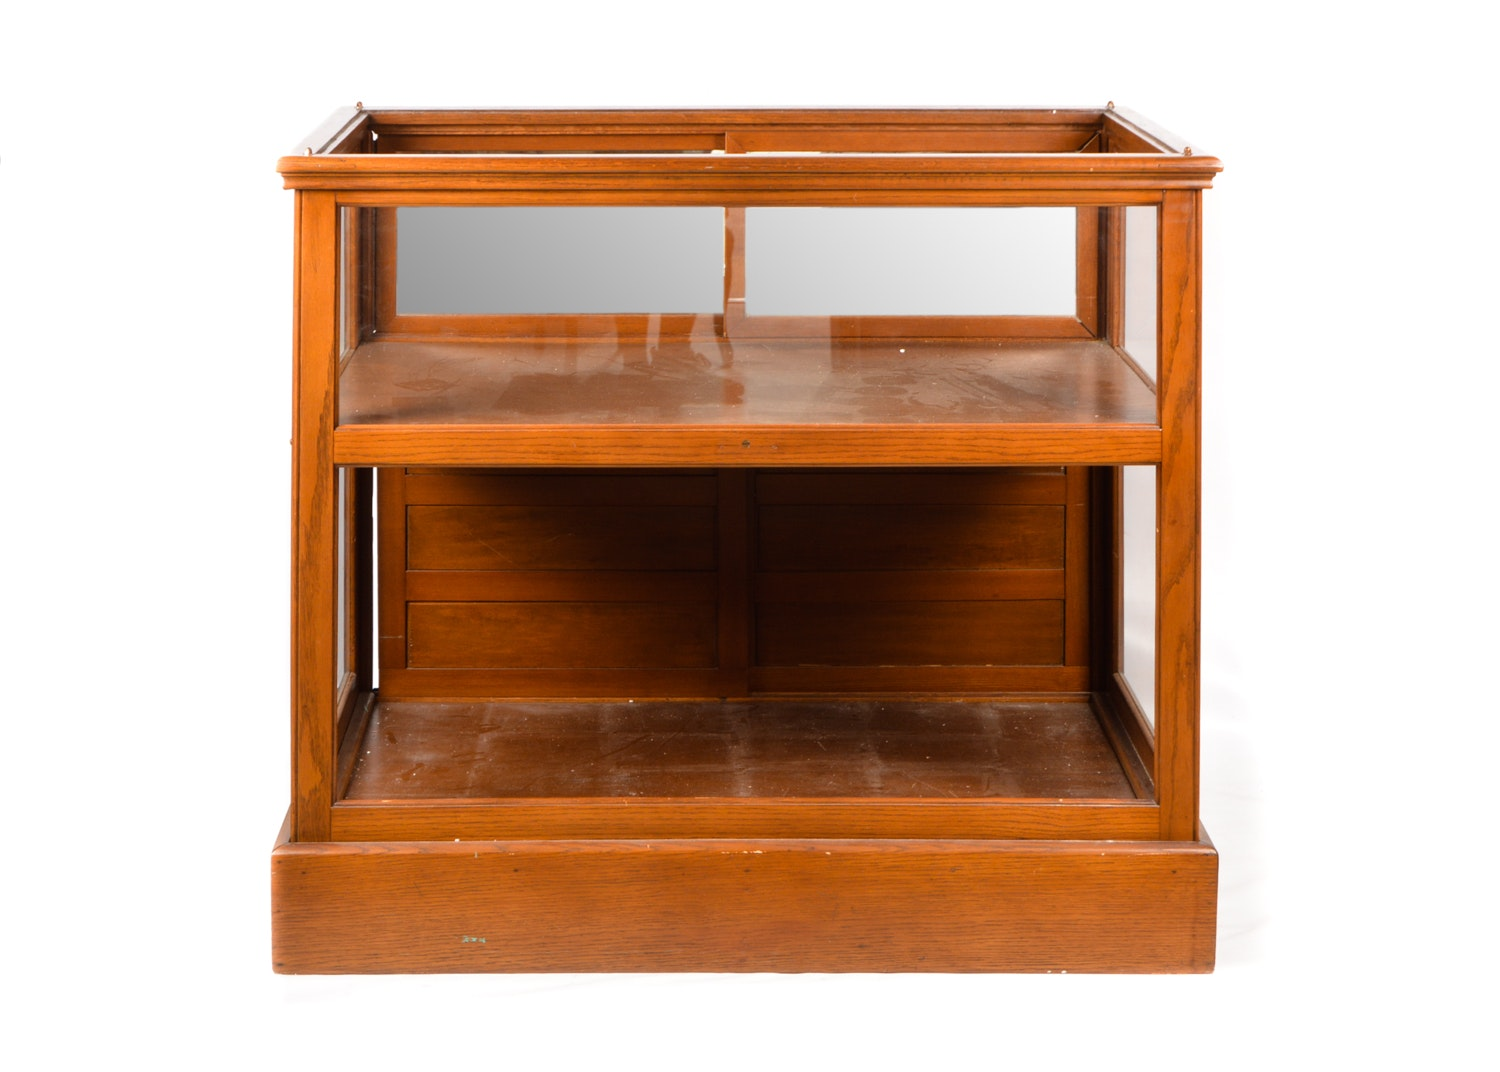 Oak Store Display Cabinet with Glass Sides, 20th Century